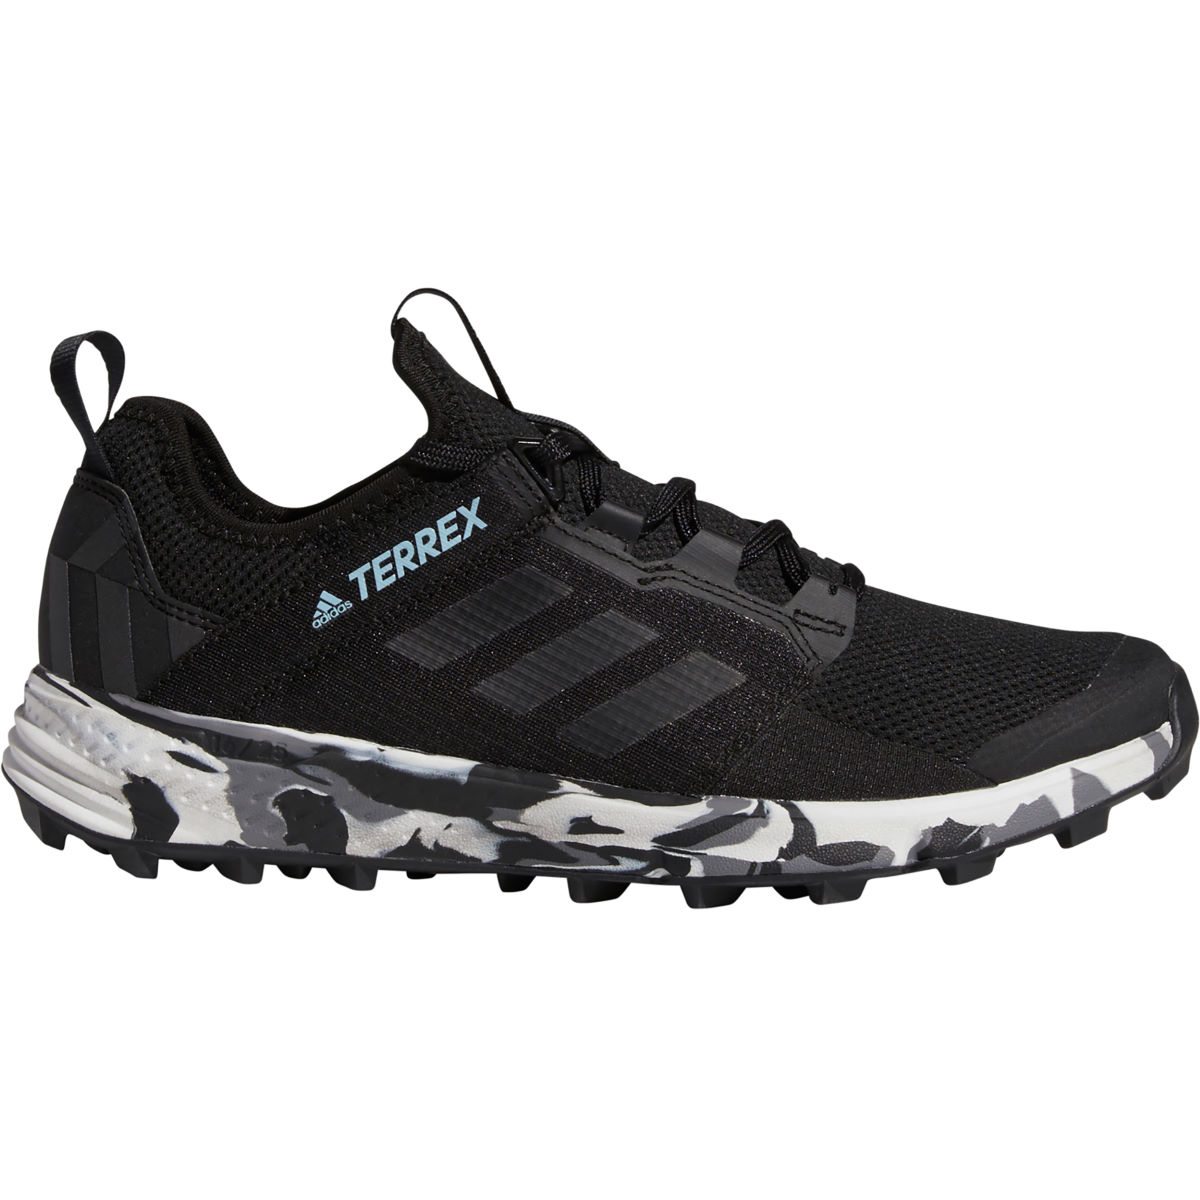 Adidas adidas Womens Terrex Agravic Speed LD Running Shoes   Trail Shoes